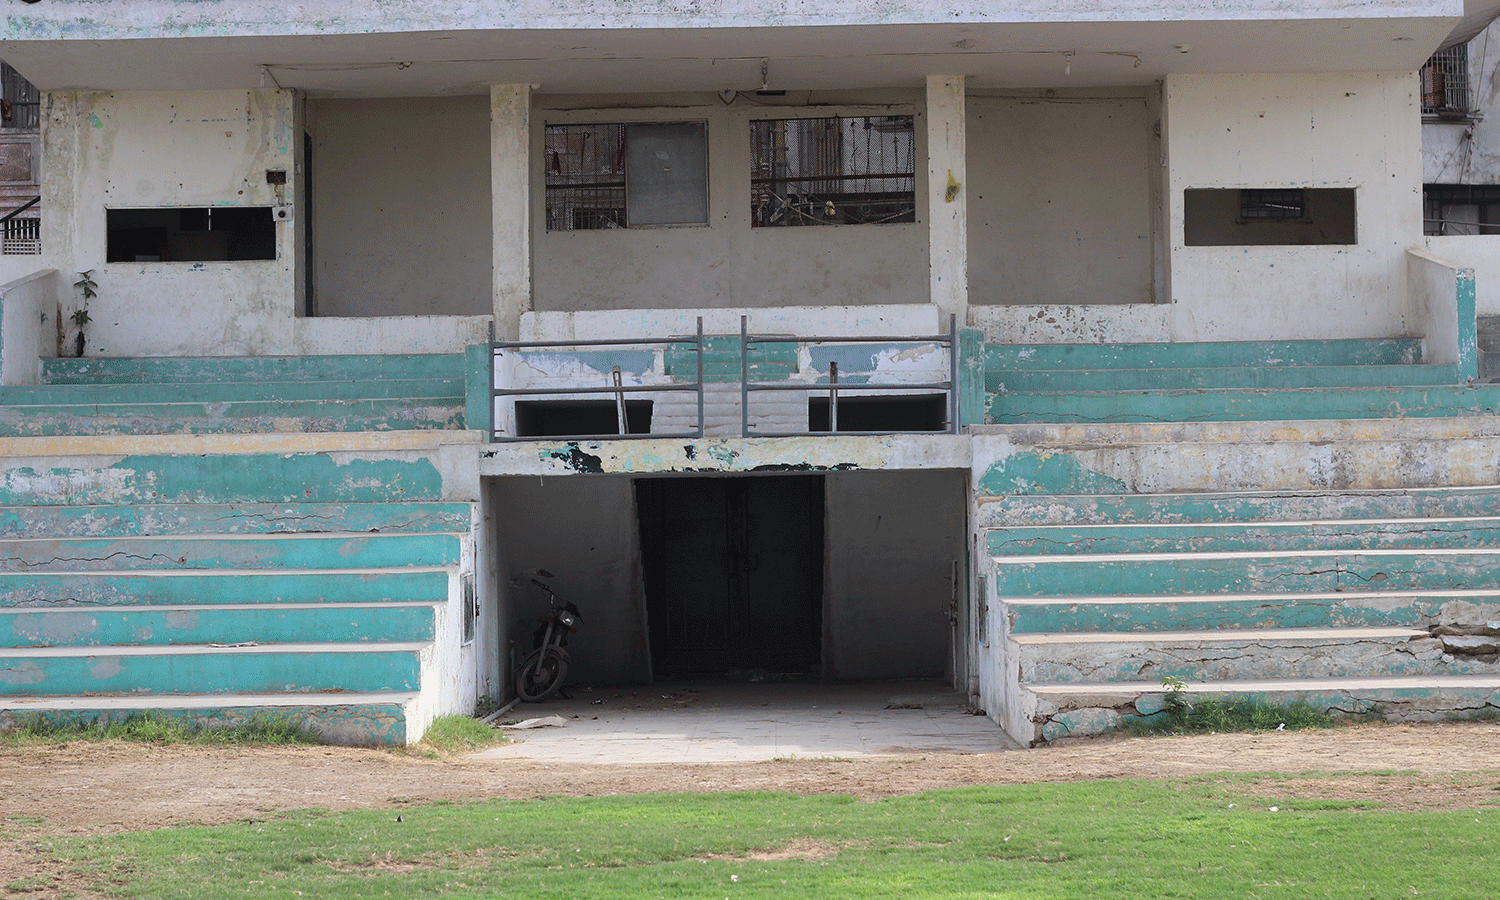 KMC Football stadium awaits authorities' attention.